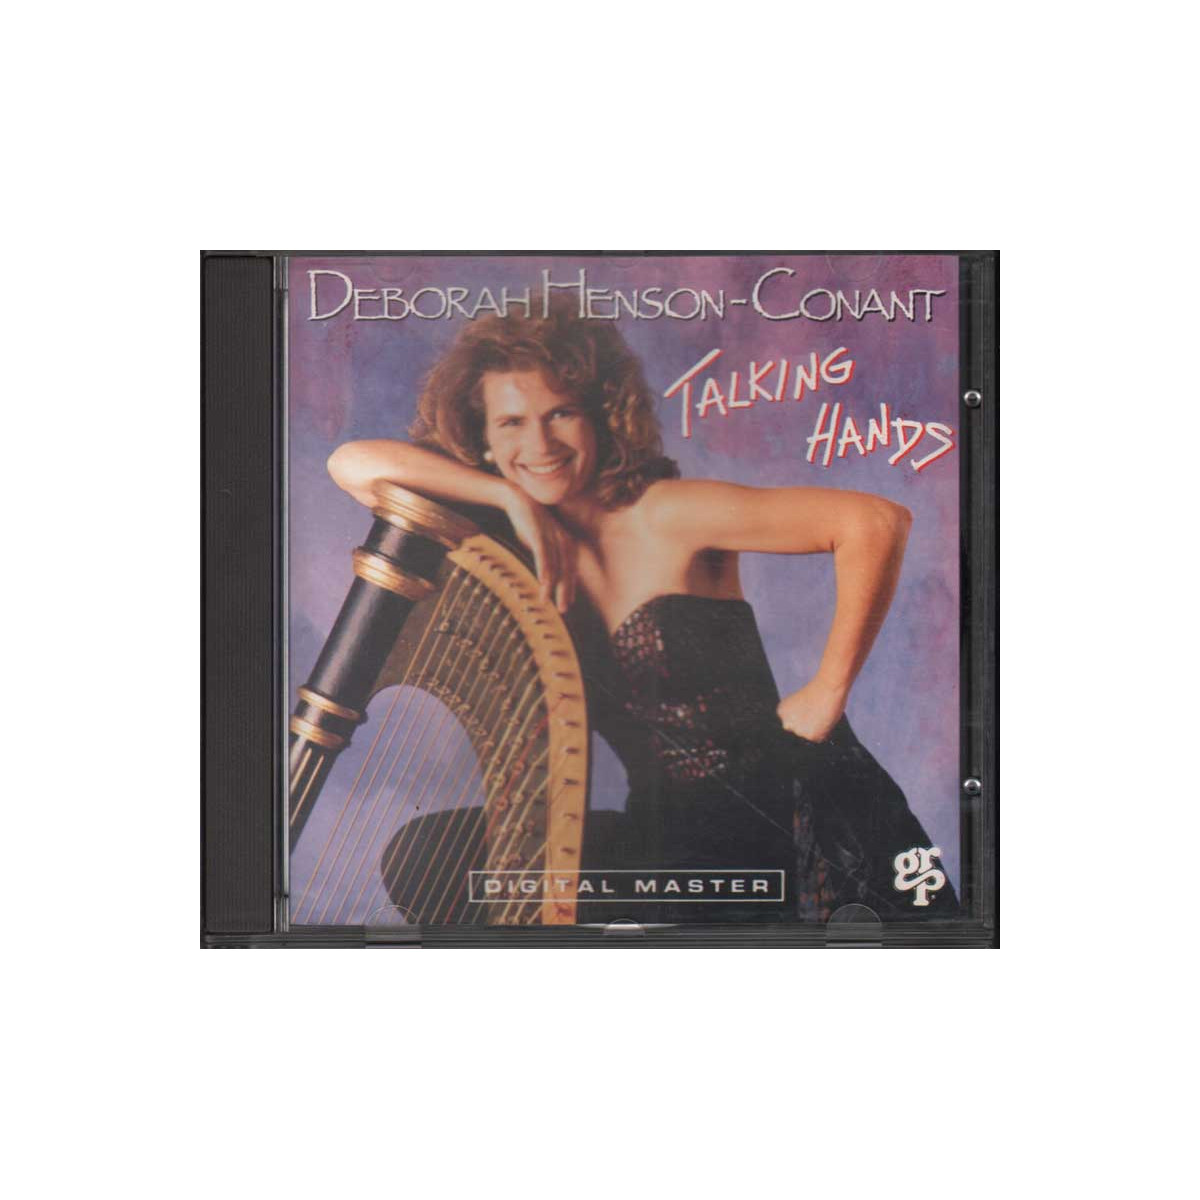 Deborah Henson-Conant CD Talking Hands - Svizzera Nuovo 0011105963626